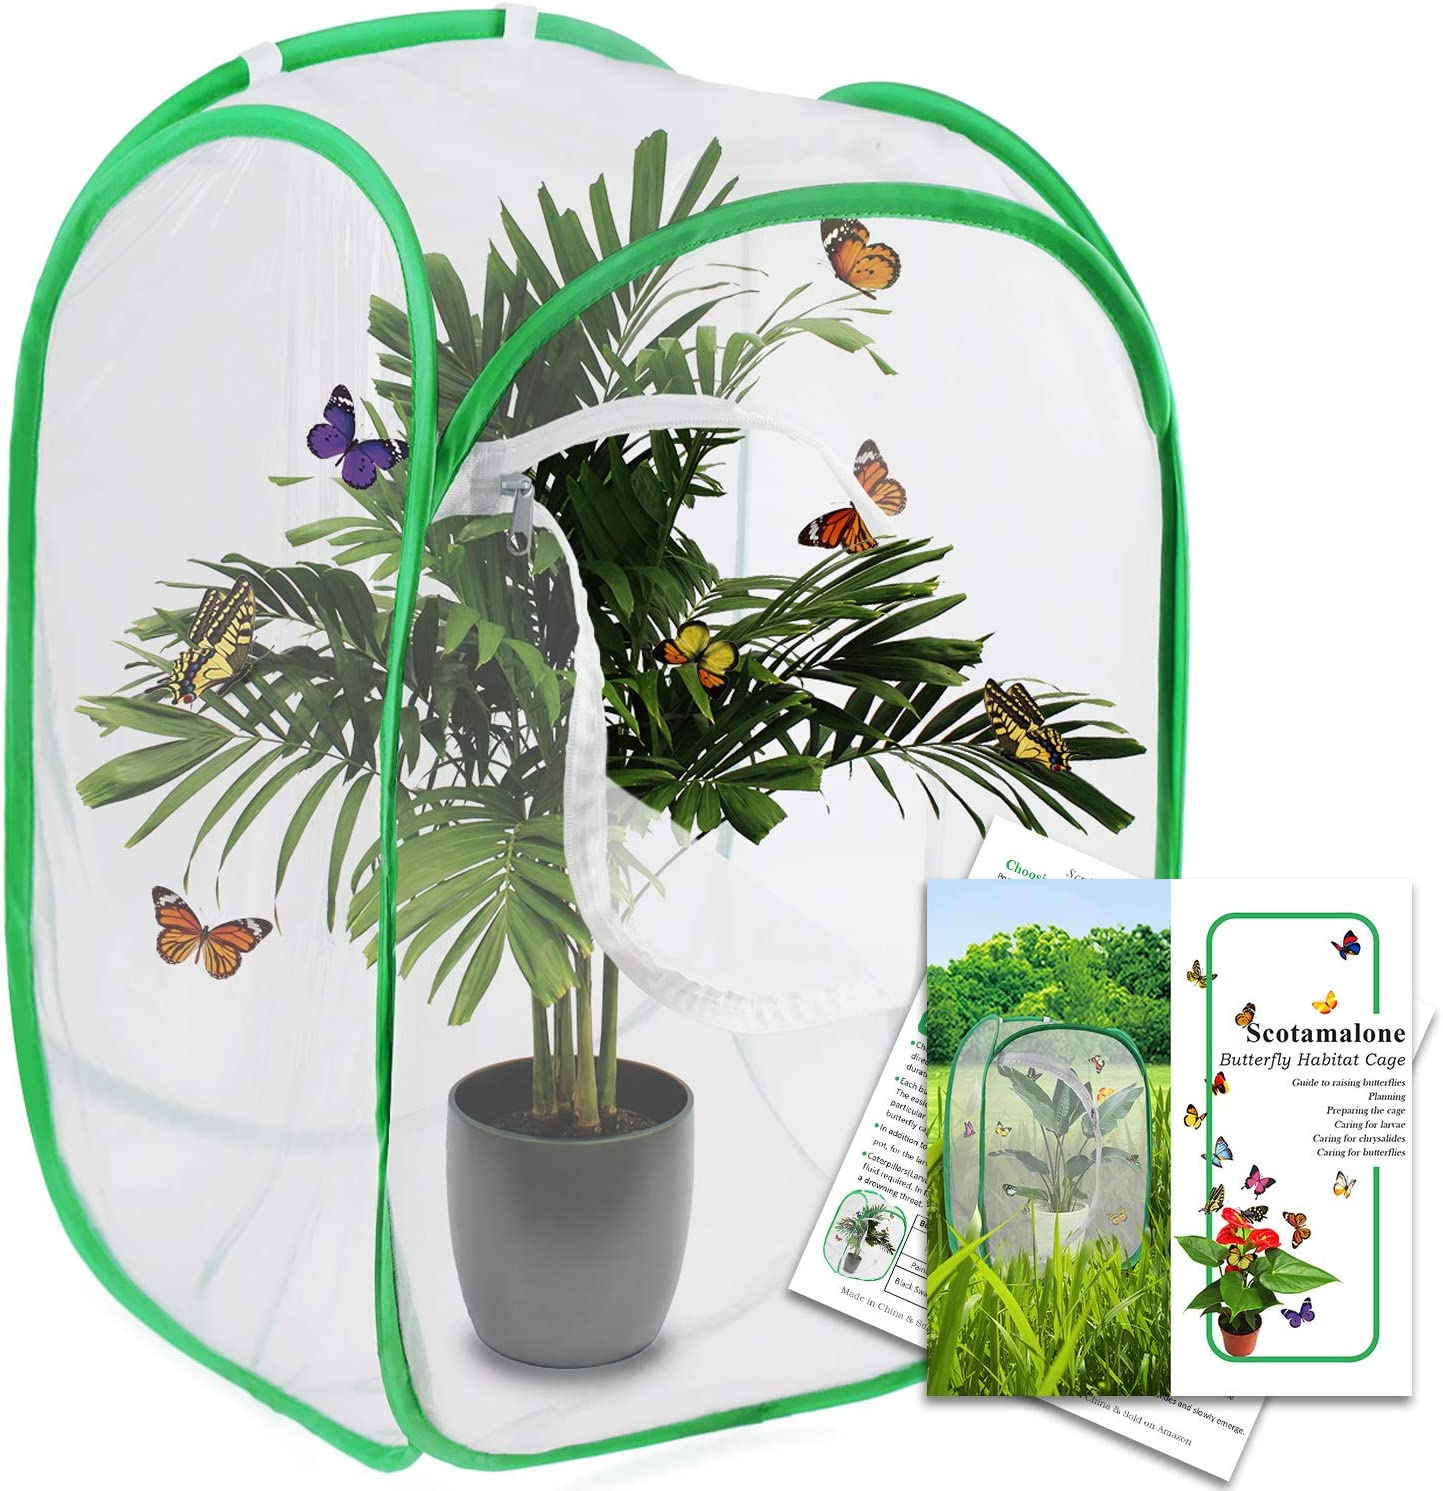 Scotamalone Butterfly Habitat Cage - Butterfly Cage - Insect Net - Terrarium Net Pop-up 23.6 Inches Tall White Green Kids Butterfly Net - Watch Butterfly Life Cycle - Watch Amazing Transformation